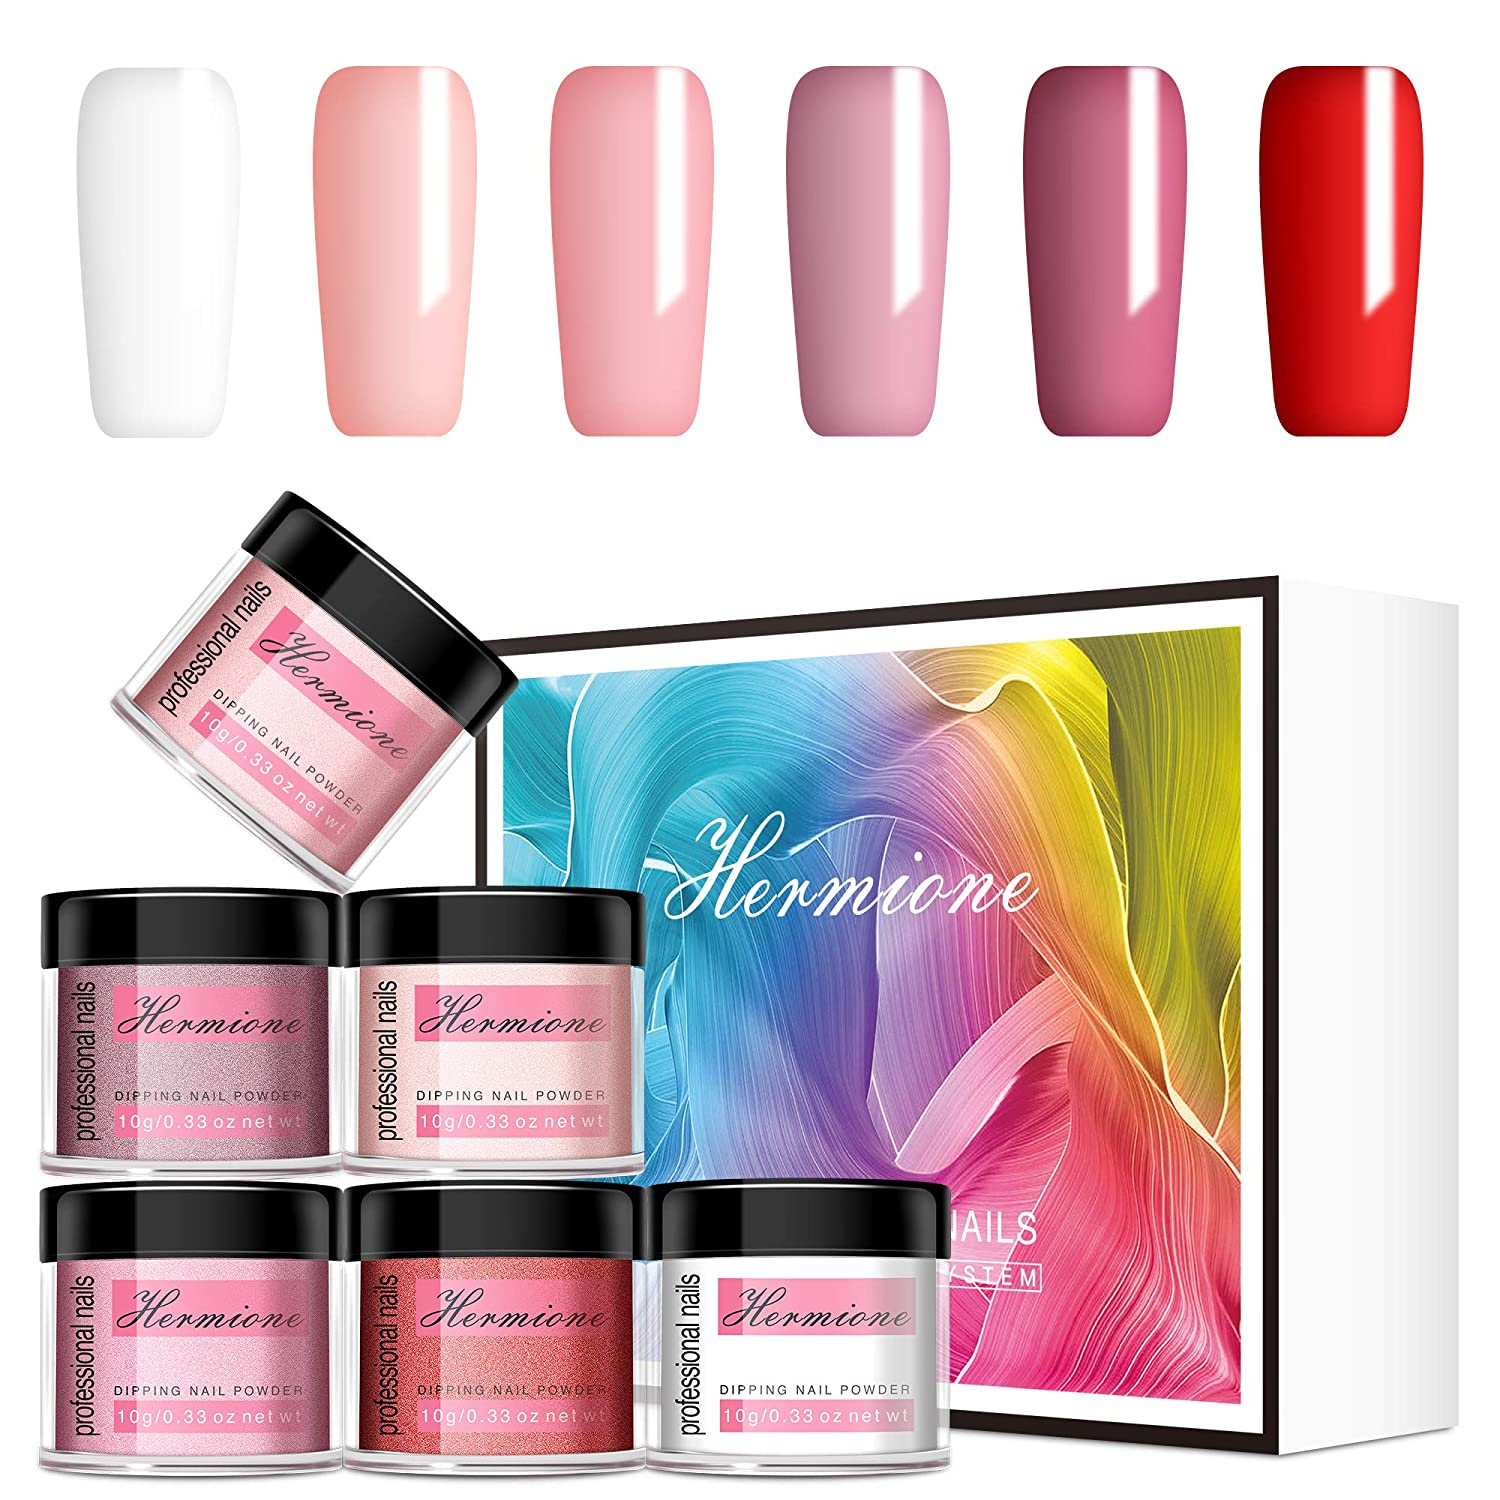 Nail Dip Powder with 6 Colors - Hermione Dipping Powder - Easy to Use, No Need Nail Lamp of French Manicure Set